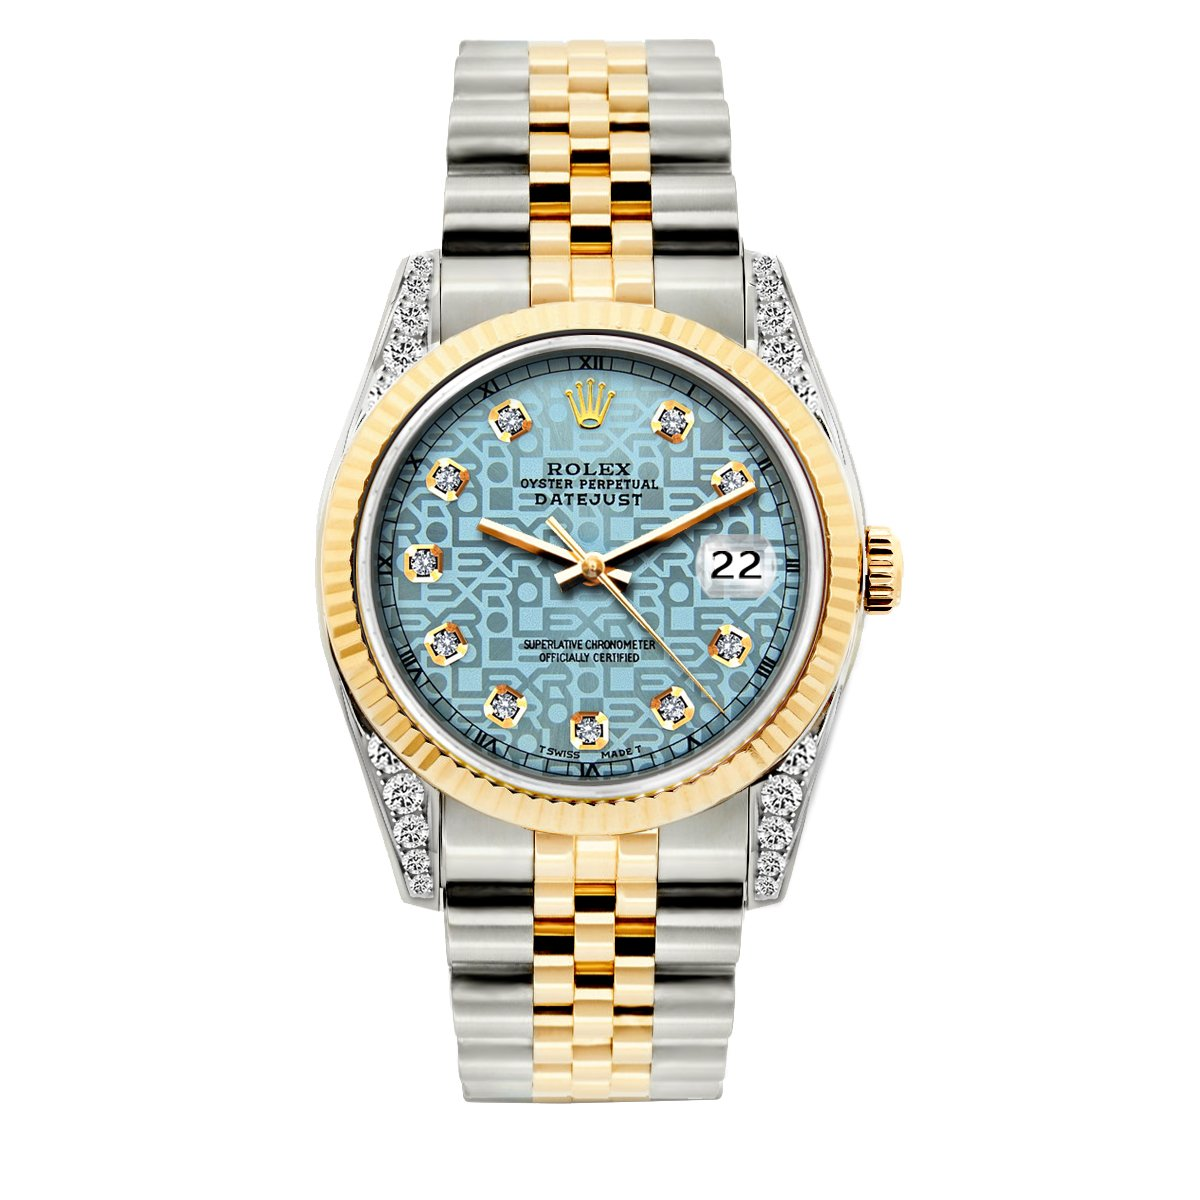 Rolex Datejust Diamond Watch, 36mm, Yellow Gold and Stainless Steel Bracelet Blue Rolex Dial w/ Diamond Lugs